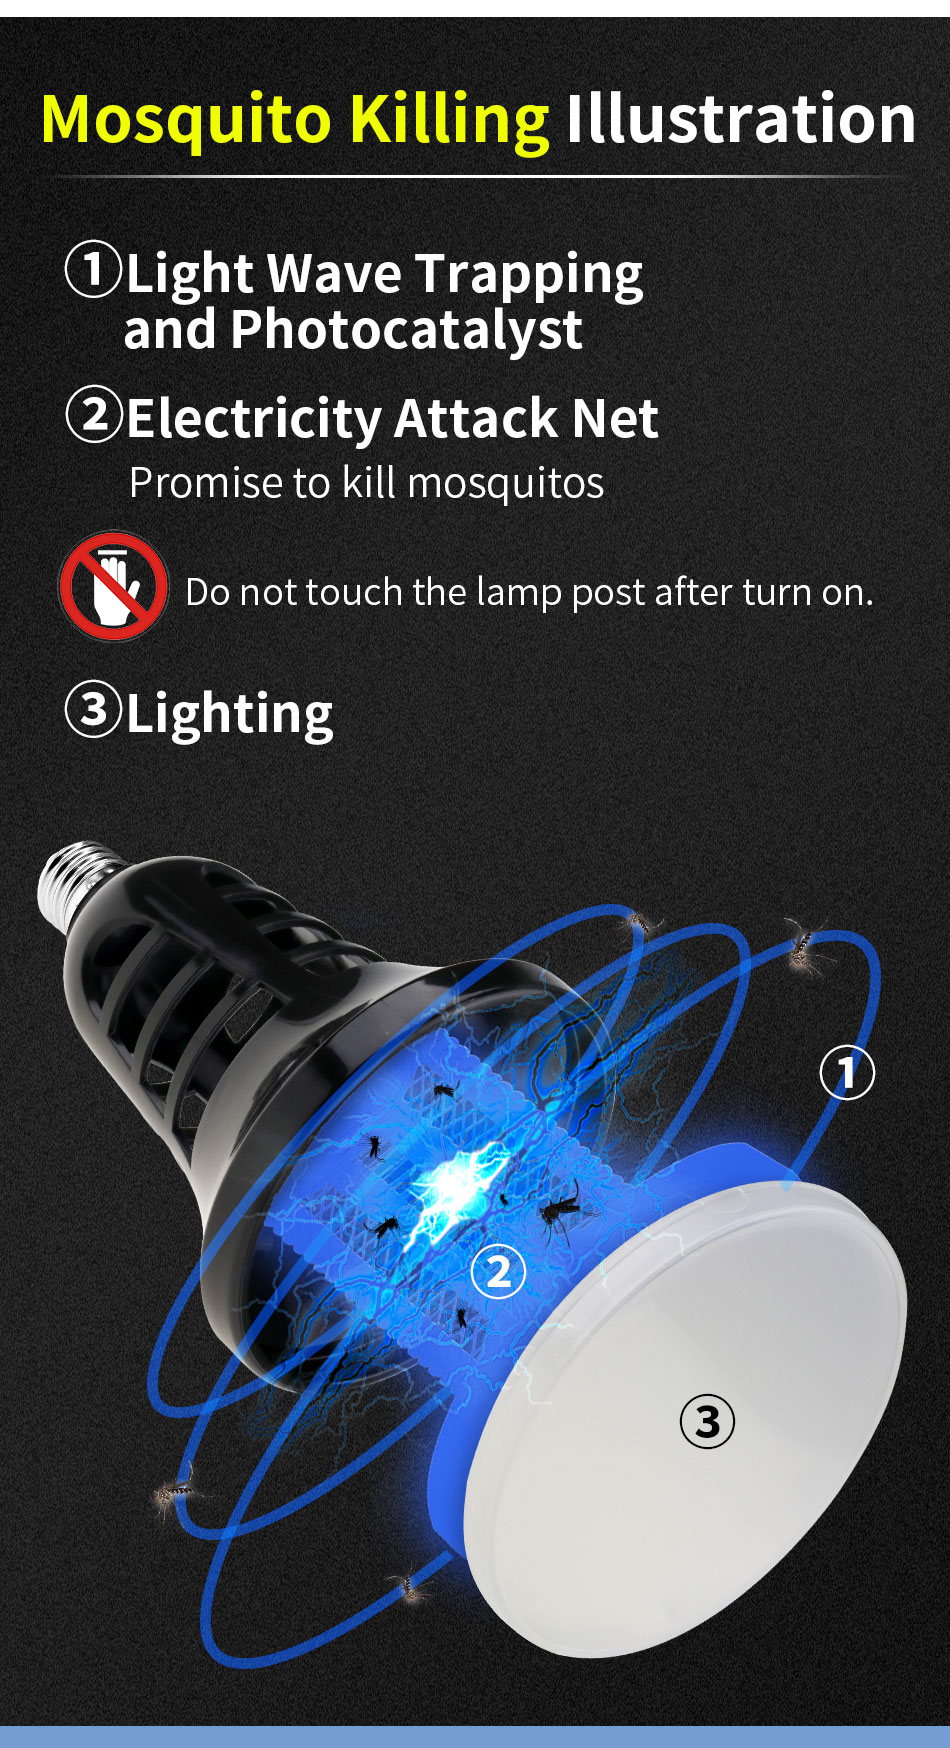 _07  CanLing E27 LED Bulb Electrical Lure Mosquito Killer Mild 220V Mosquito Killer Lamp 2 in 1 Digital Anti Insect Bug Night time Lamps HTB1F6kNqeuSBuNjSsplq6ze8pXam